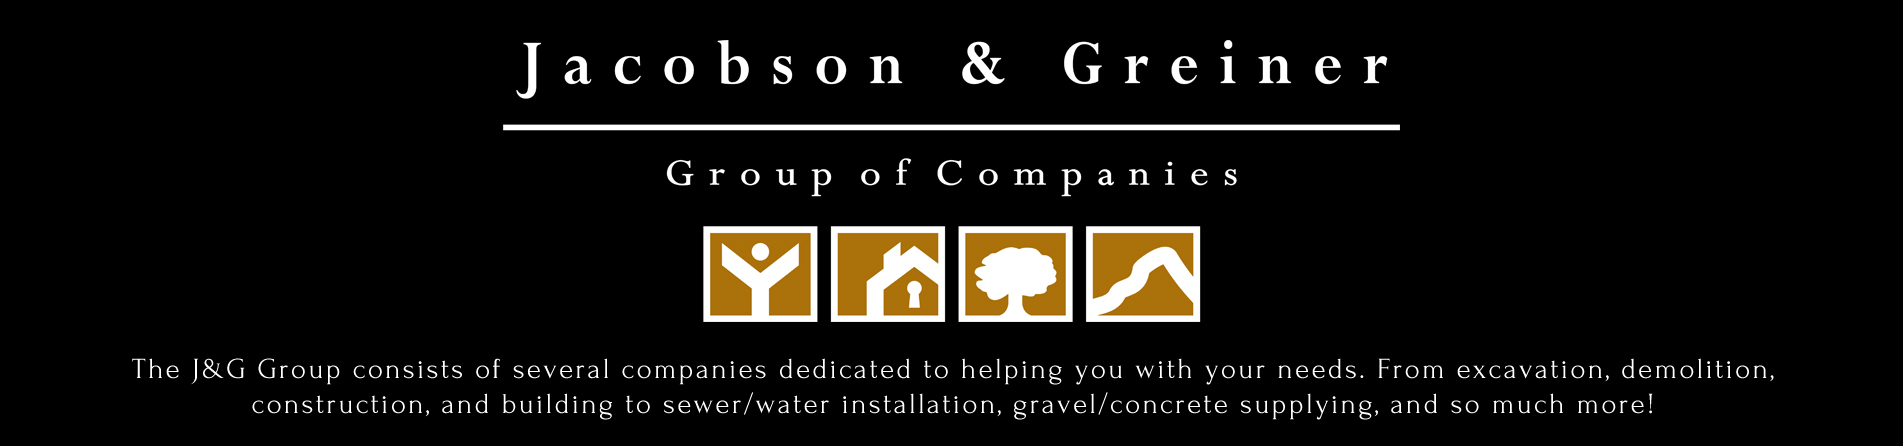 Jacobson & Greiner Group of Companies, Brandon, Manitoba, construction, plumbing, electrical, retail, house builders